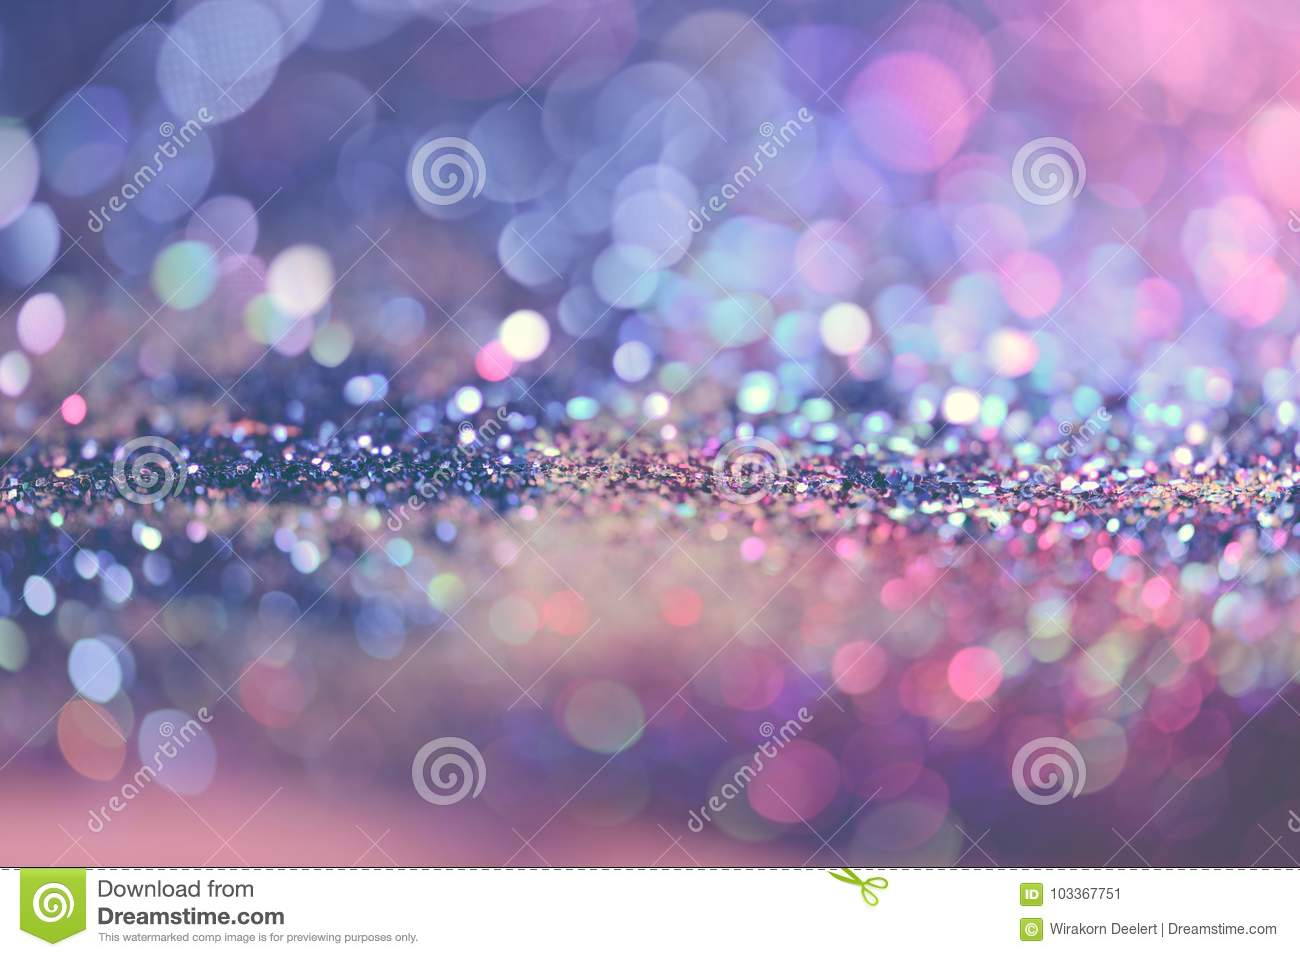 bokeh blurred abstract background for birthday anniversary wedding new year eve or christmas